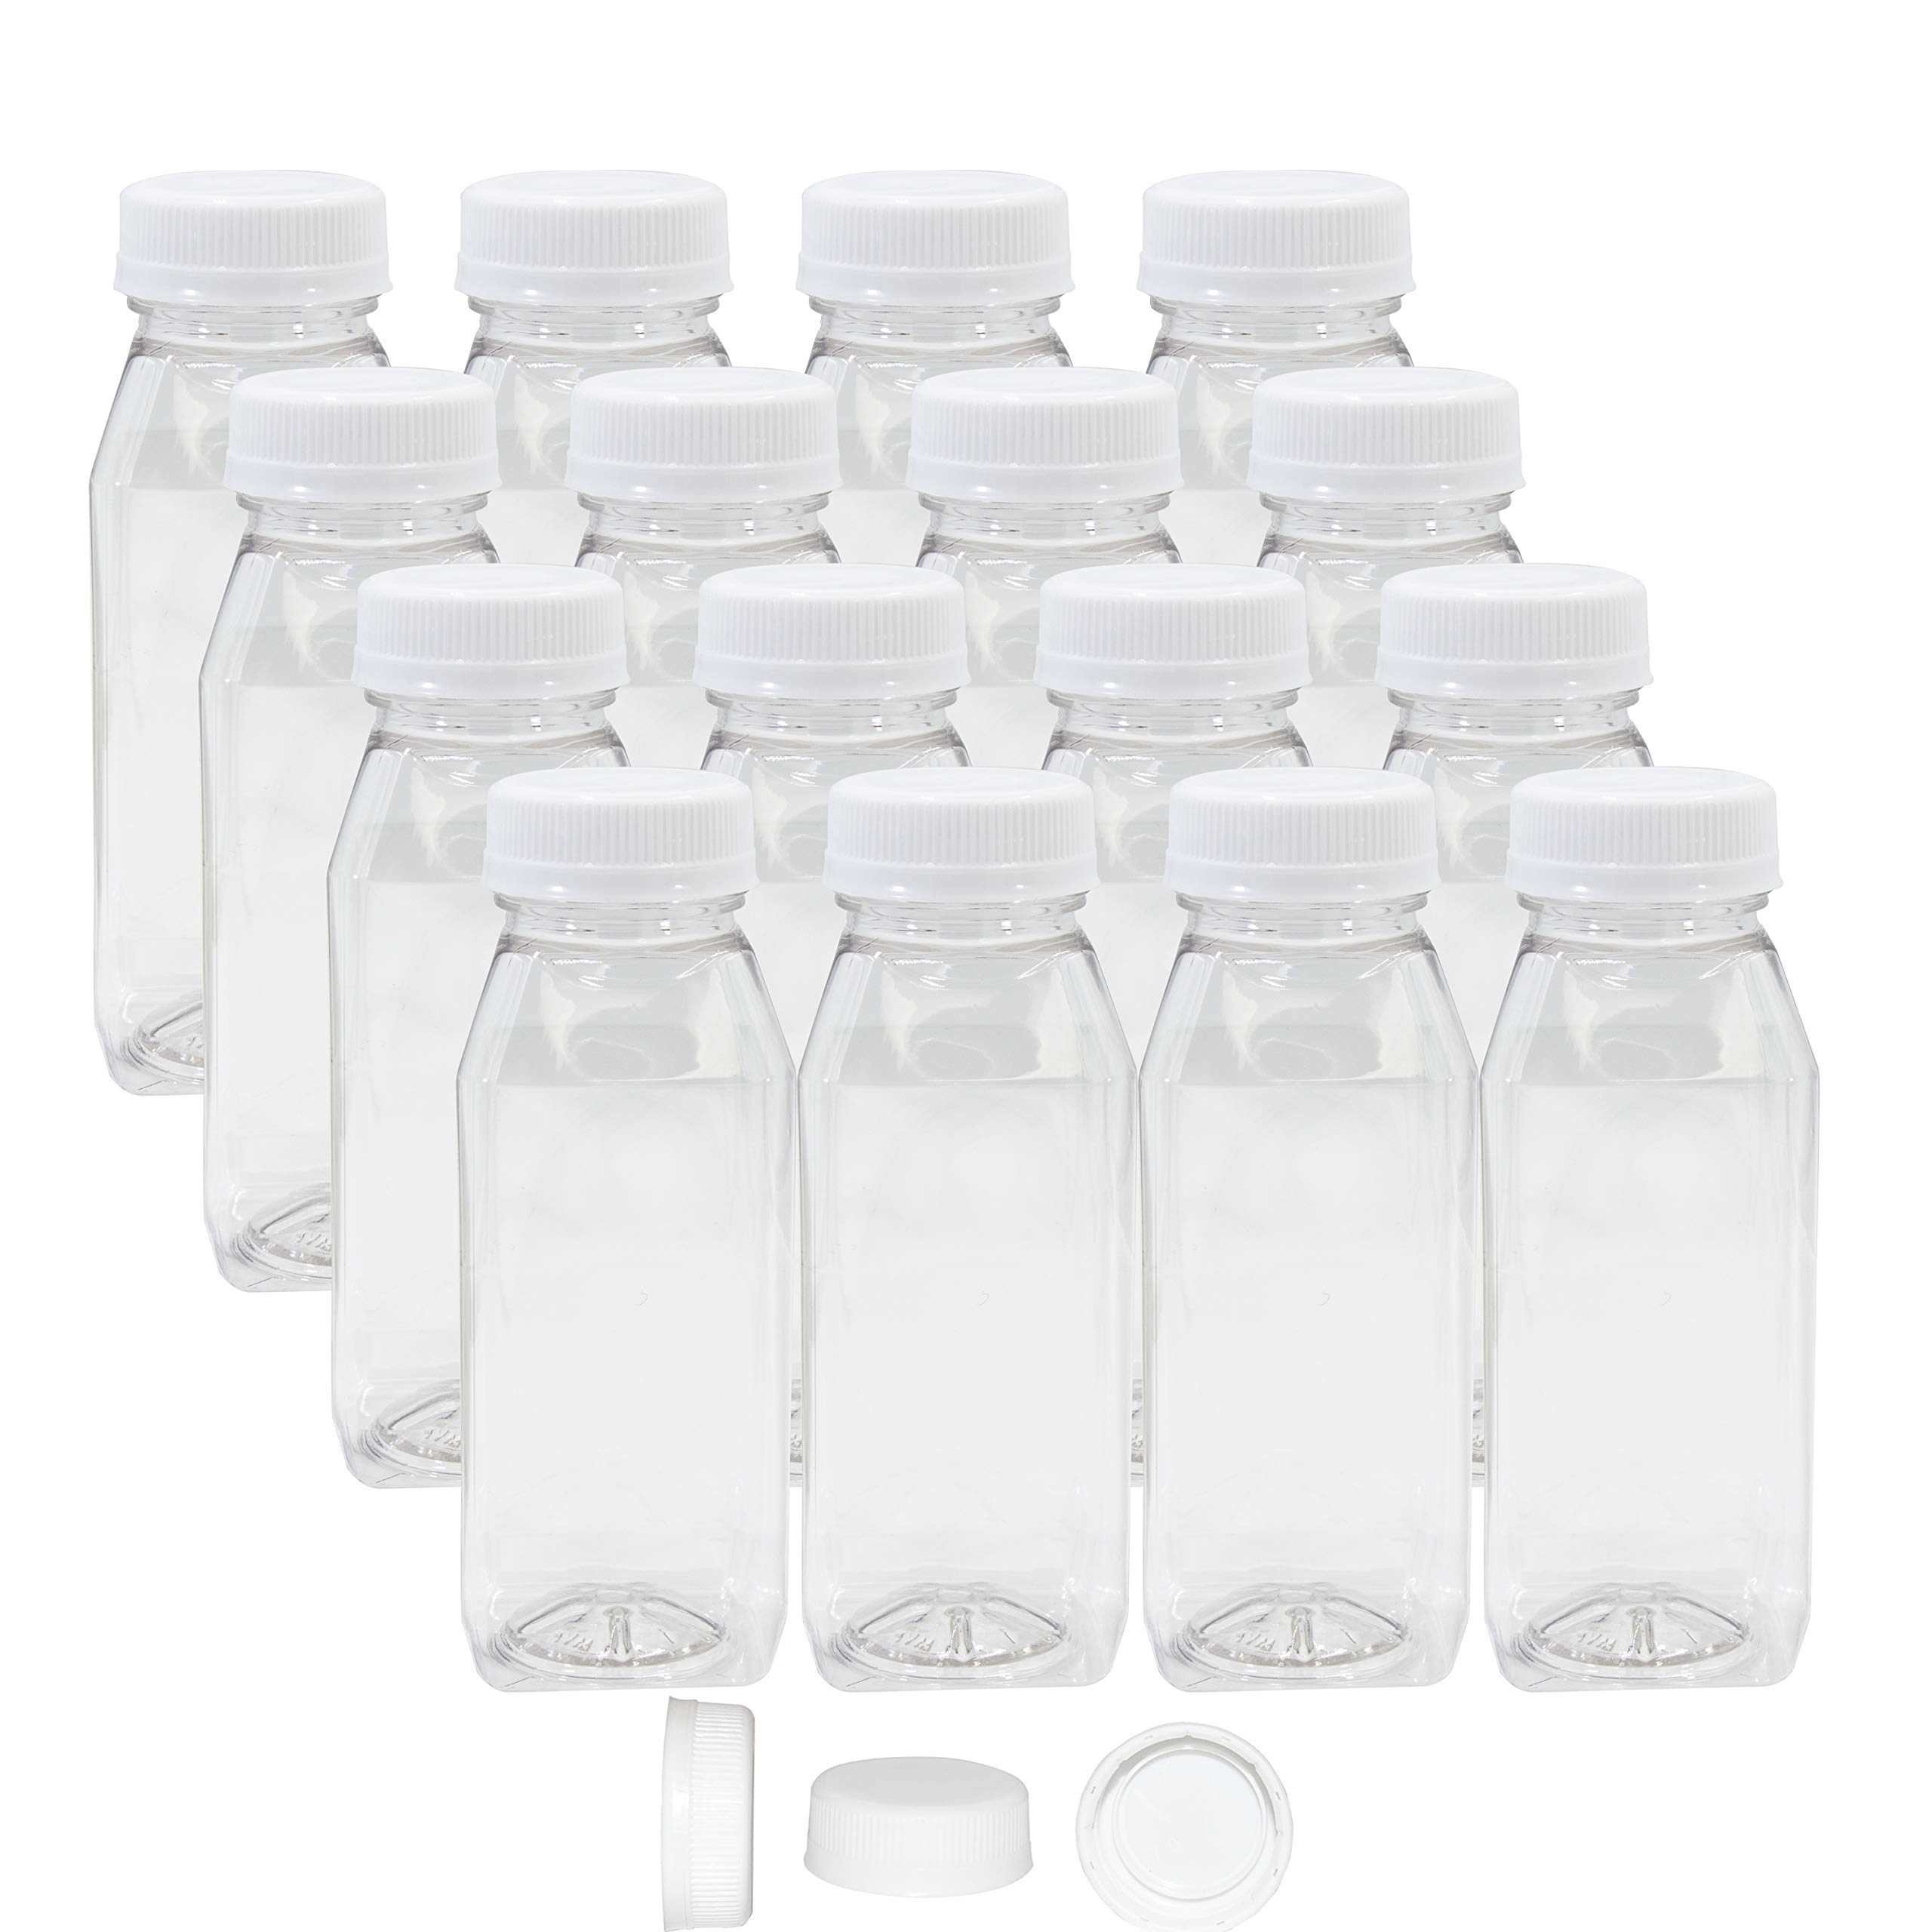 Pack of 48 Empty PET Plastic Juice Bottles - 8 oz Reusable Clear Disposable Milk Bulk Containers with White Tamper Evident Caps by Upper Midland Products (Image #1)